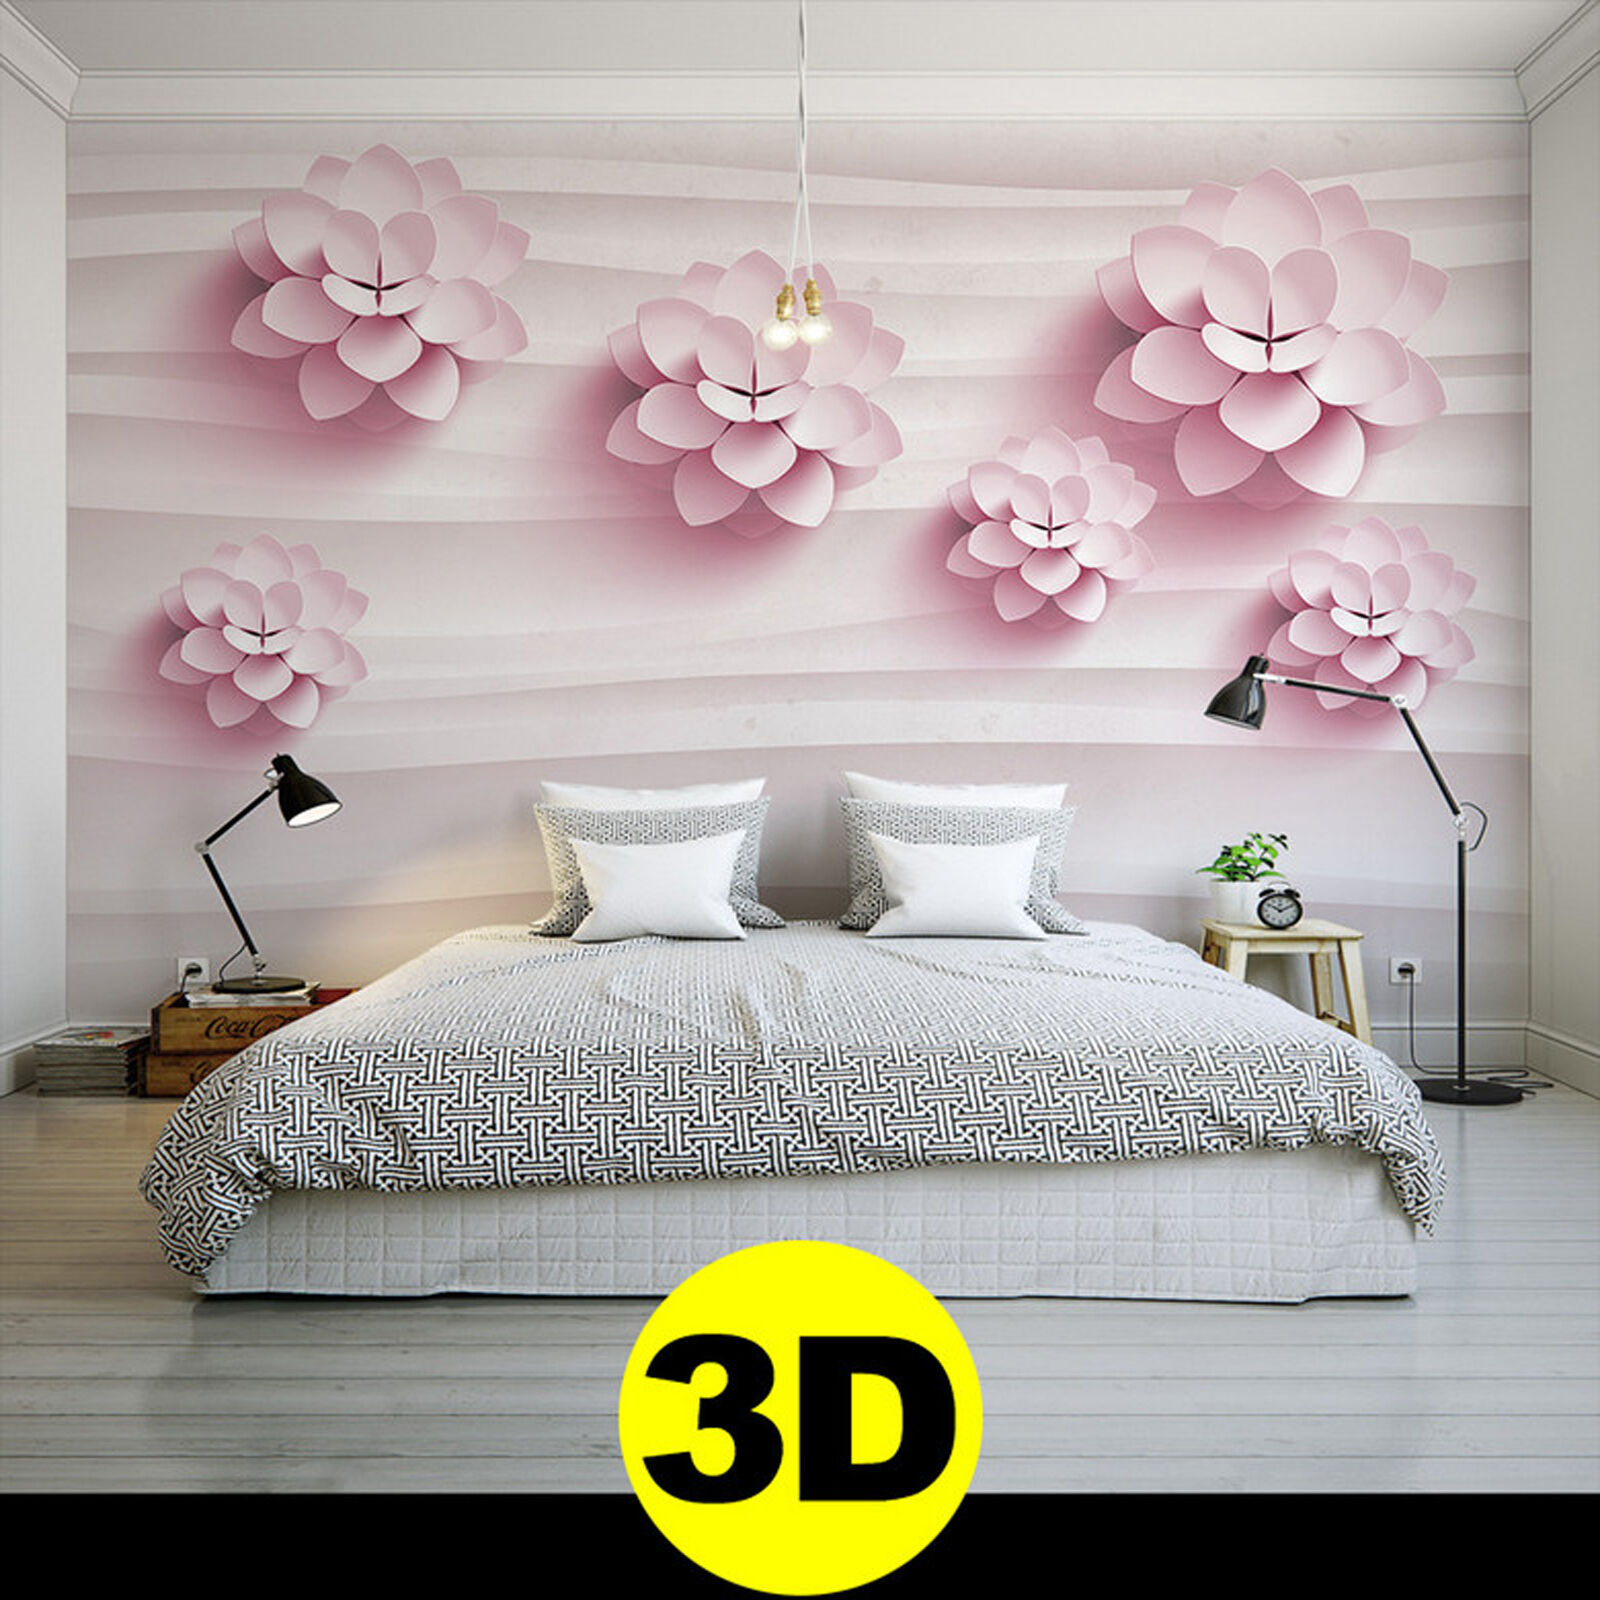 vlies fototapeten wandbilder 3d blume vlies tapeten 1145 eur 17 90 picclick de. Black Bedroom Furniture Sets. Home Design Ideas